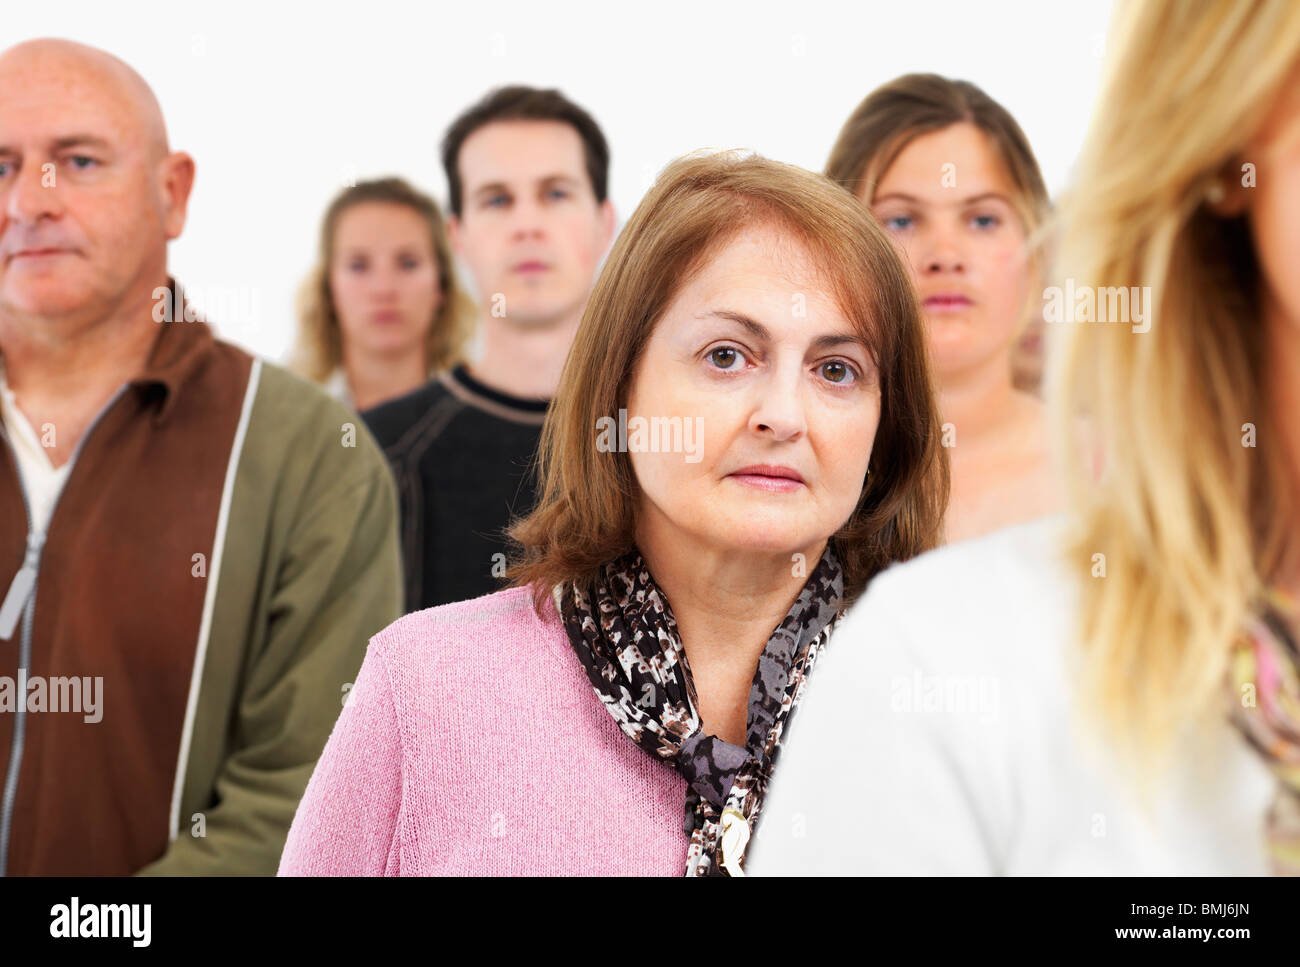 group of people - Stock Image